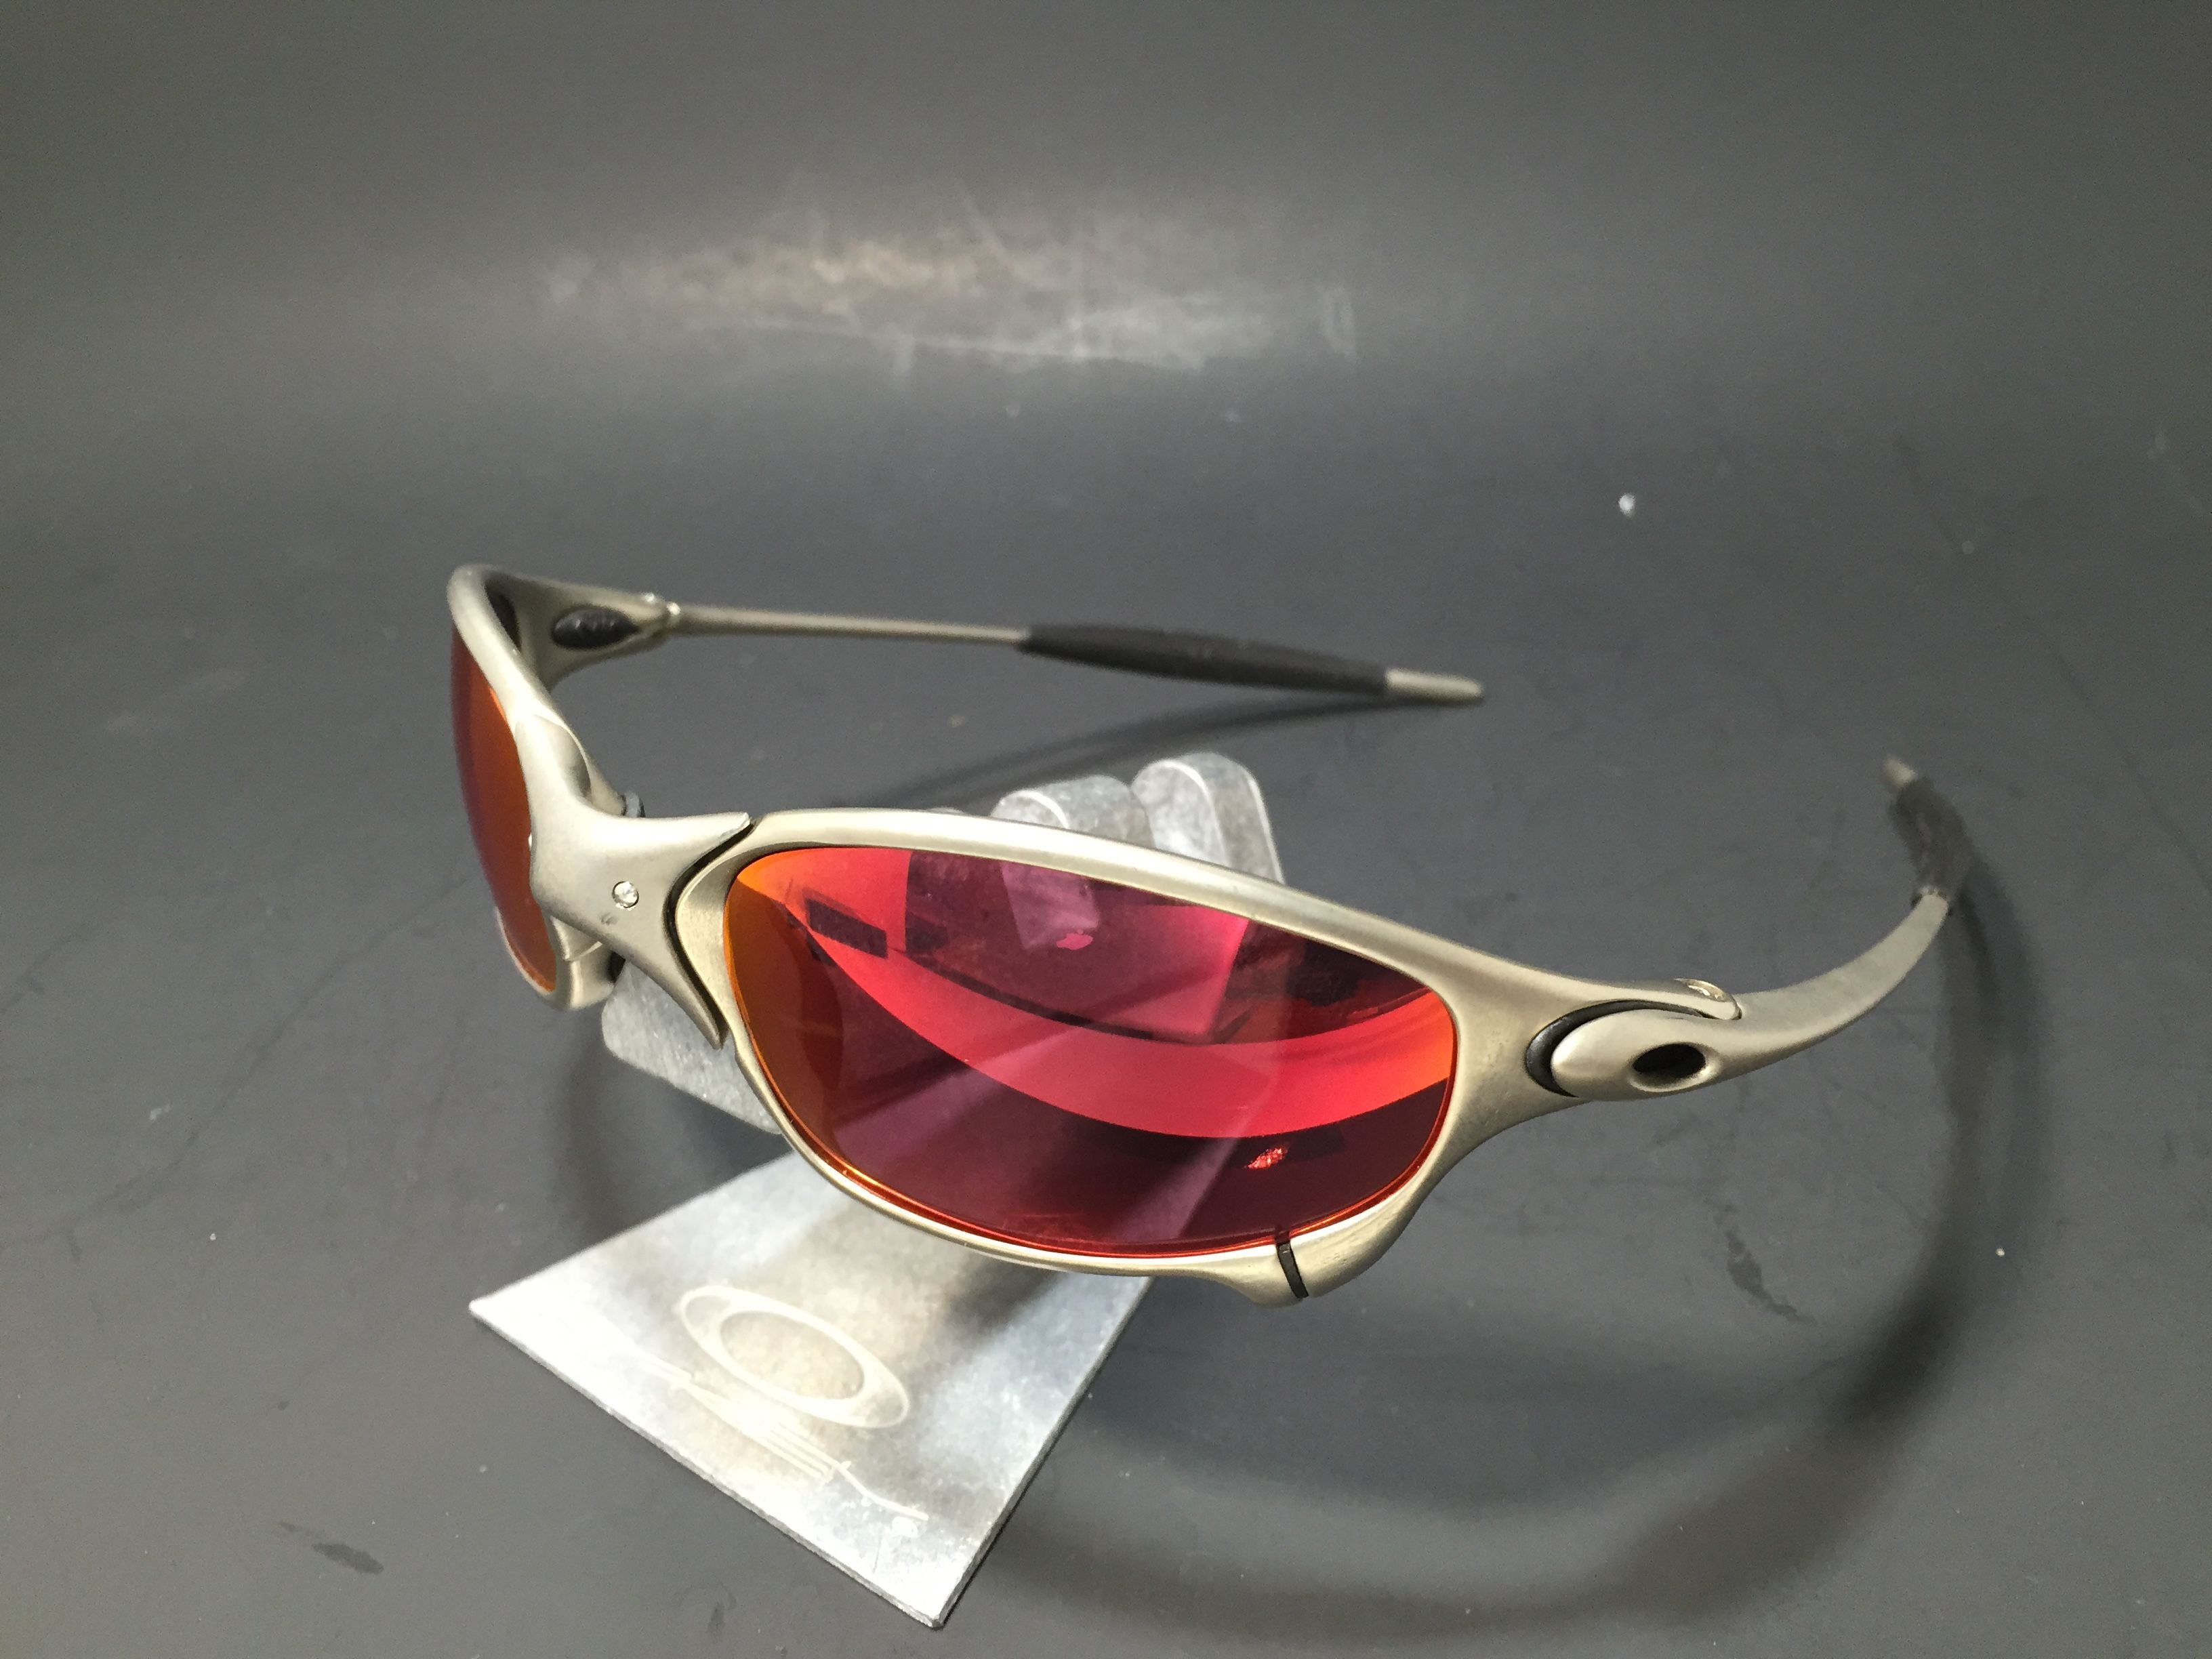 Oakley Sunglasses Offer